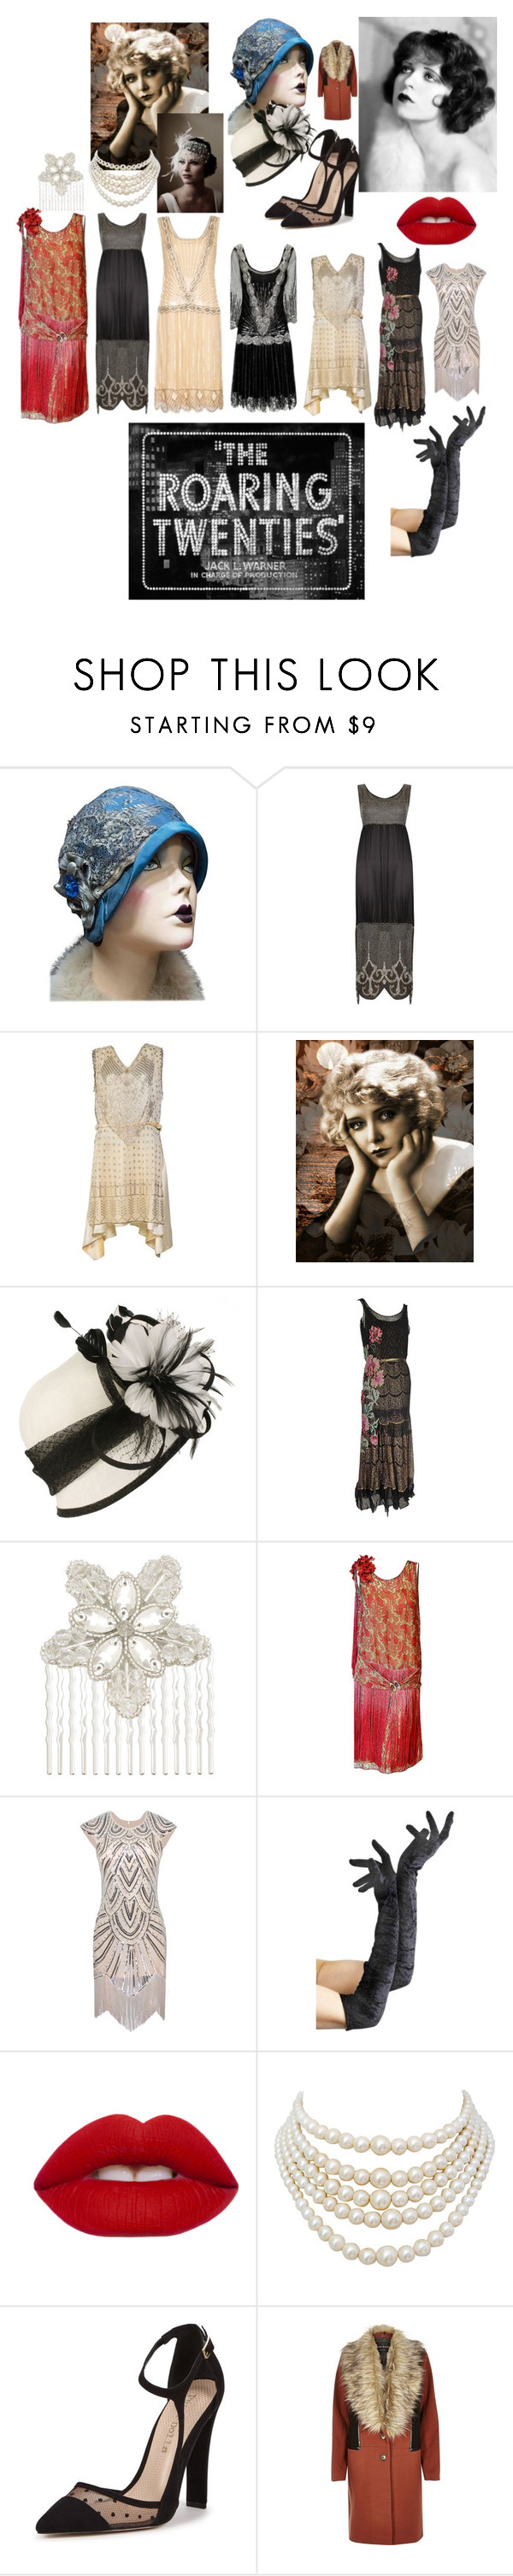 """Stella Campell"" by lauraloohoo on Polyvore featuring Lime Crime, Christian Dior, Paper Dolls, women's clothing, women, female, woman, misses and juniors"